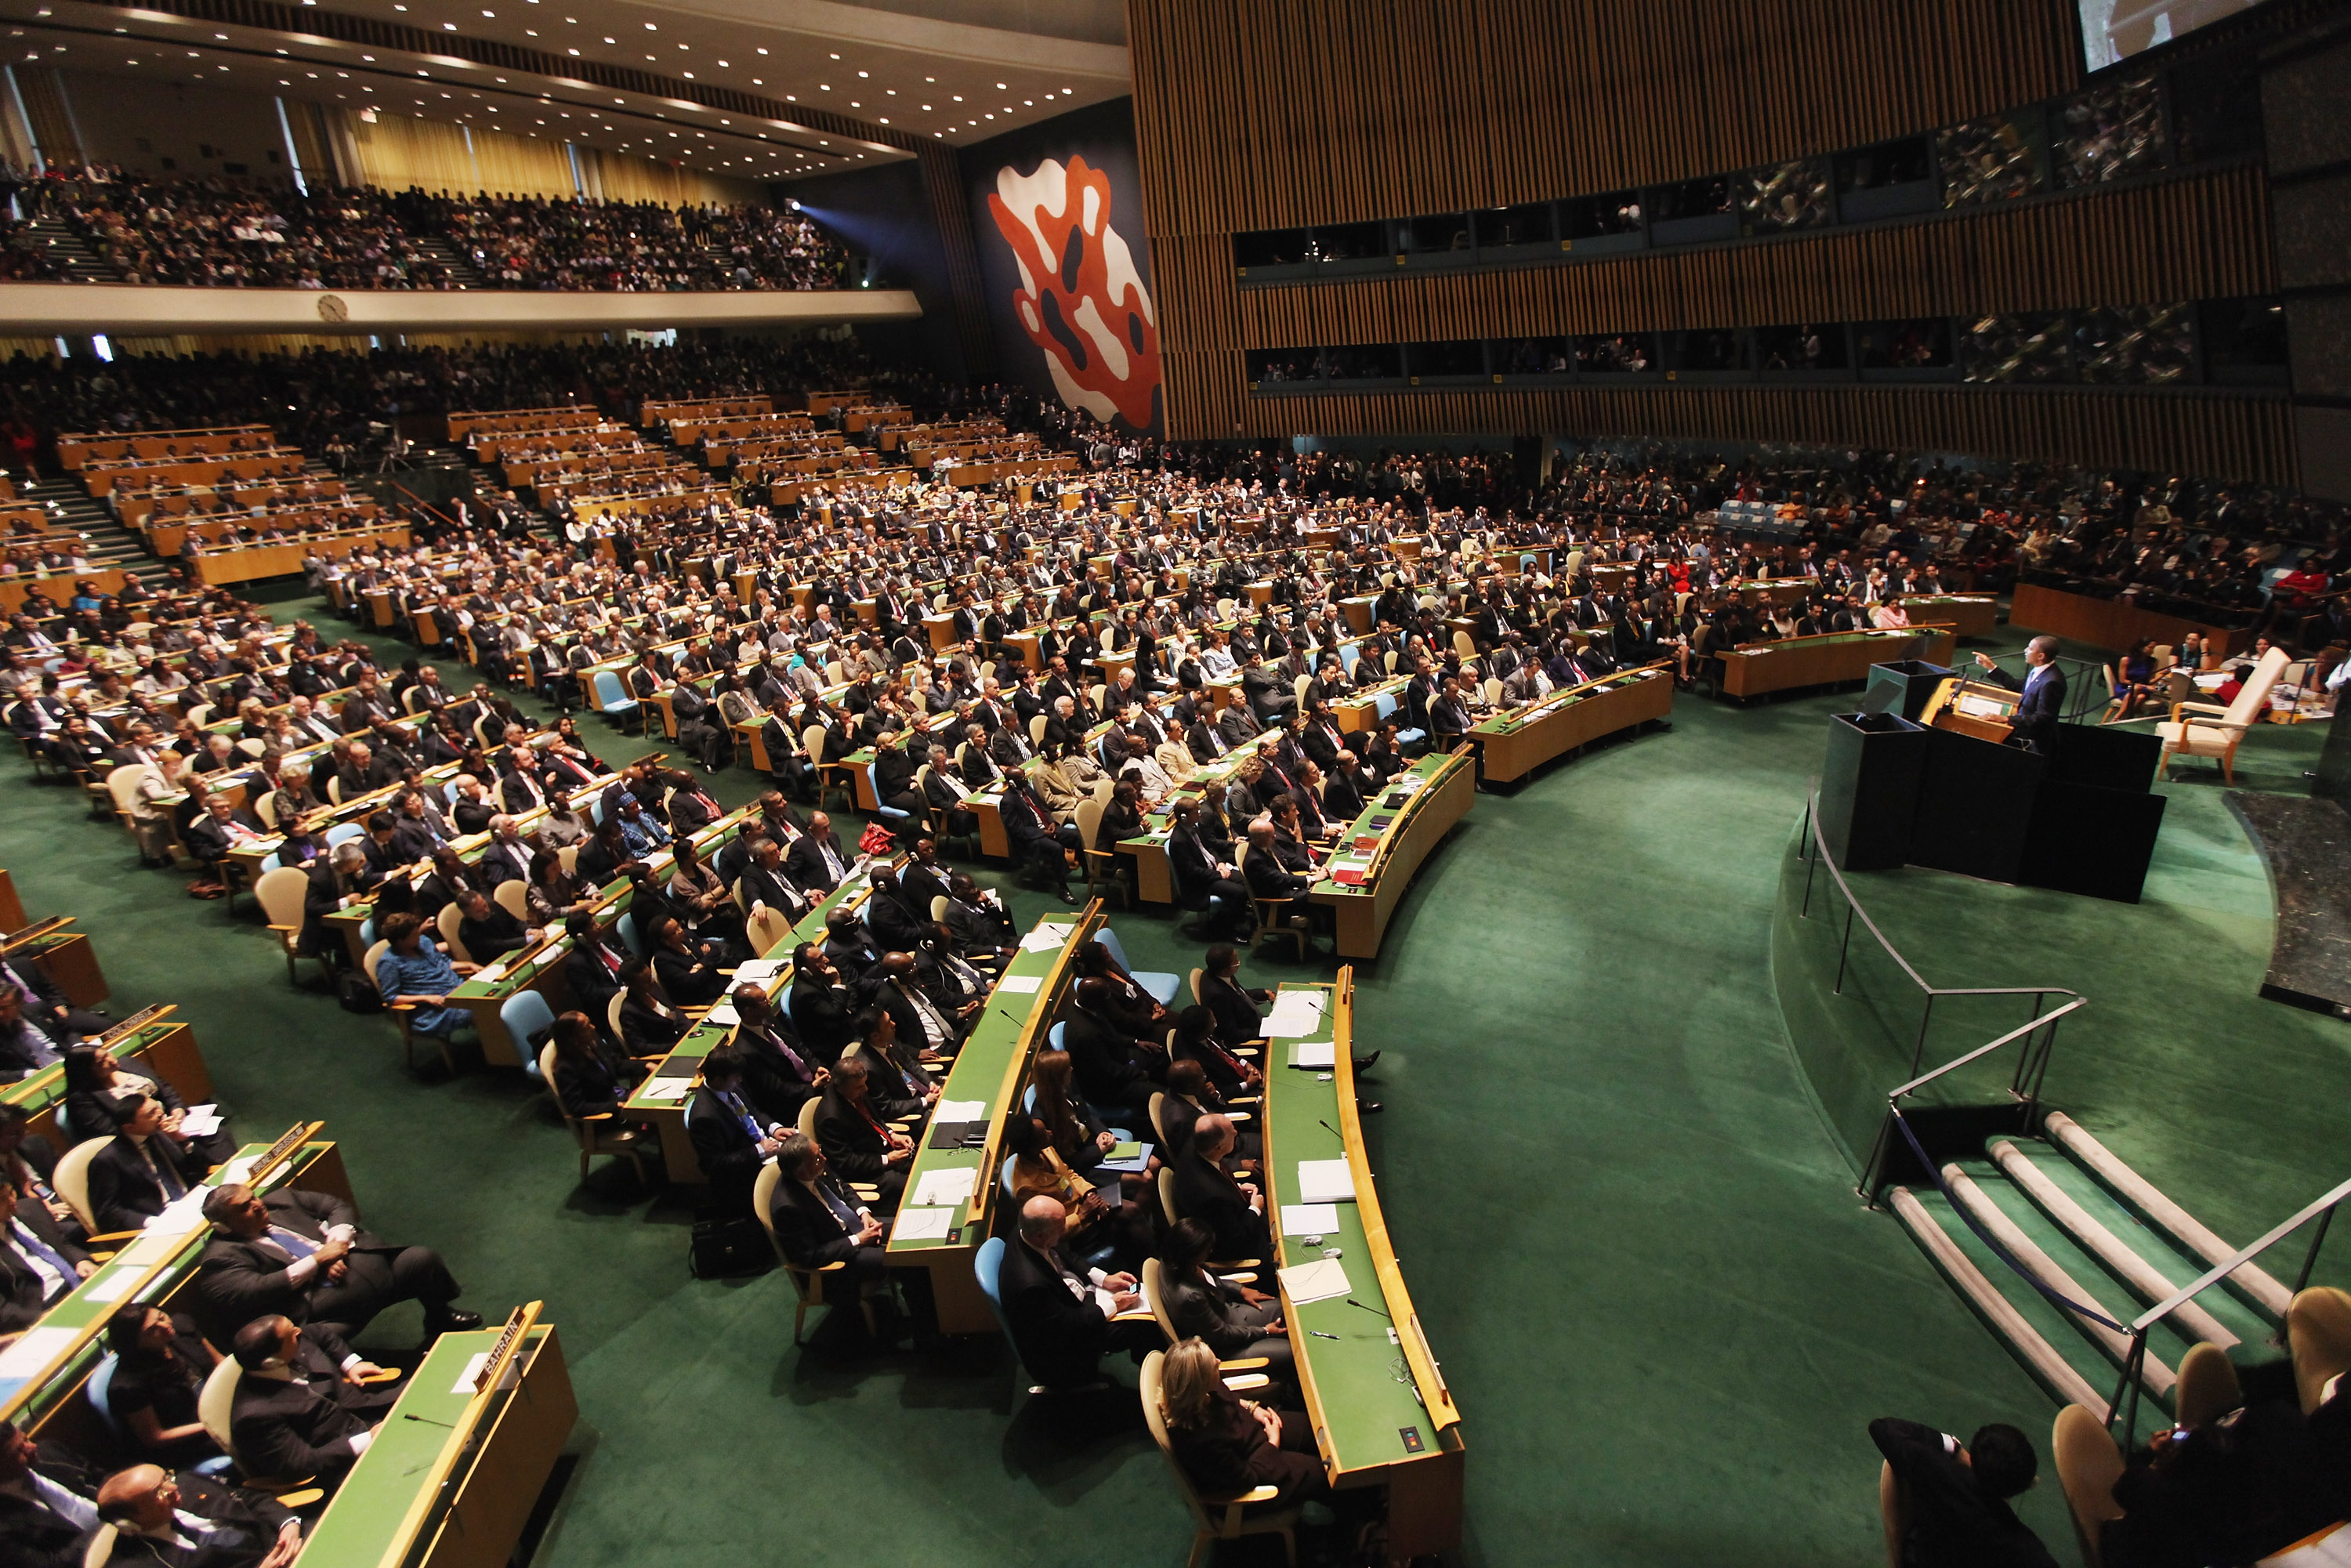 World Leaders Attend 66th United Nations General Assembly